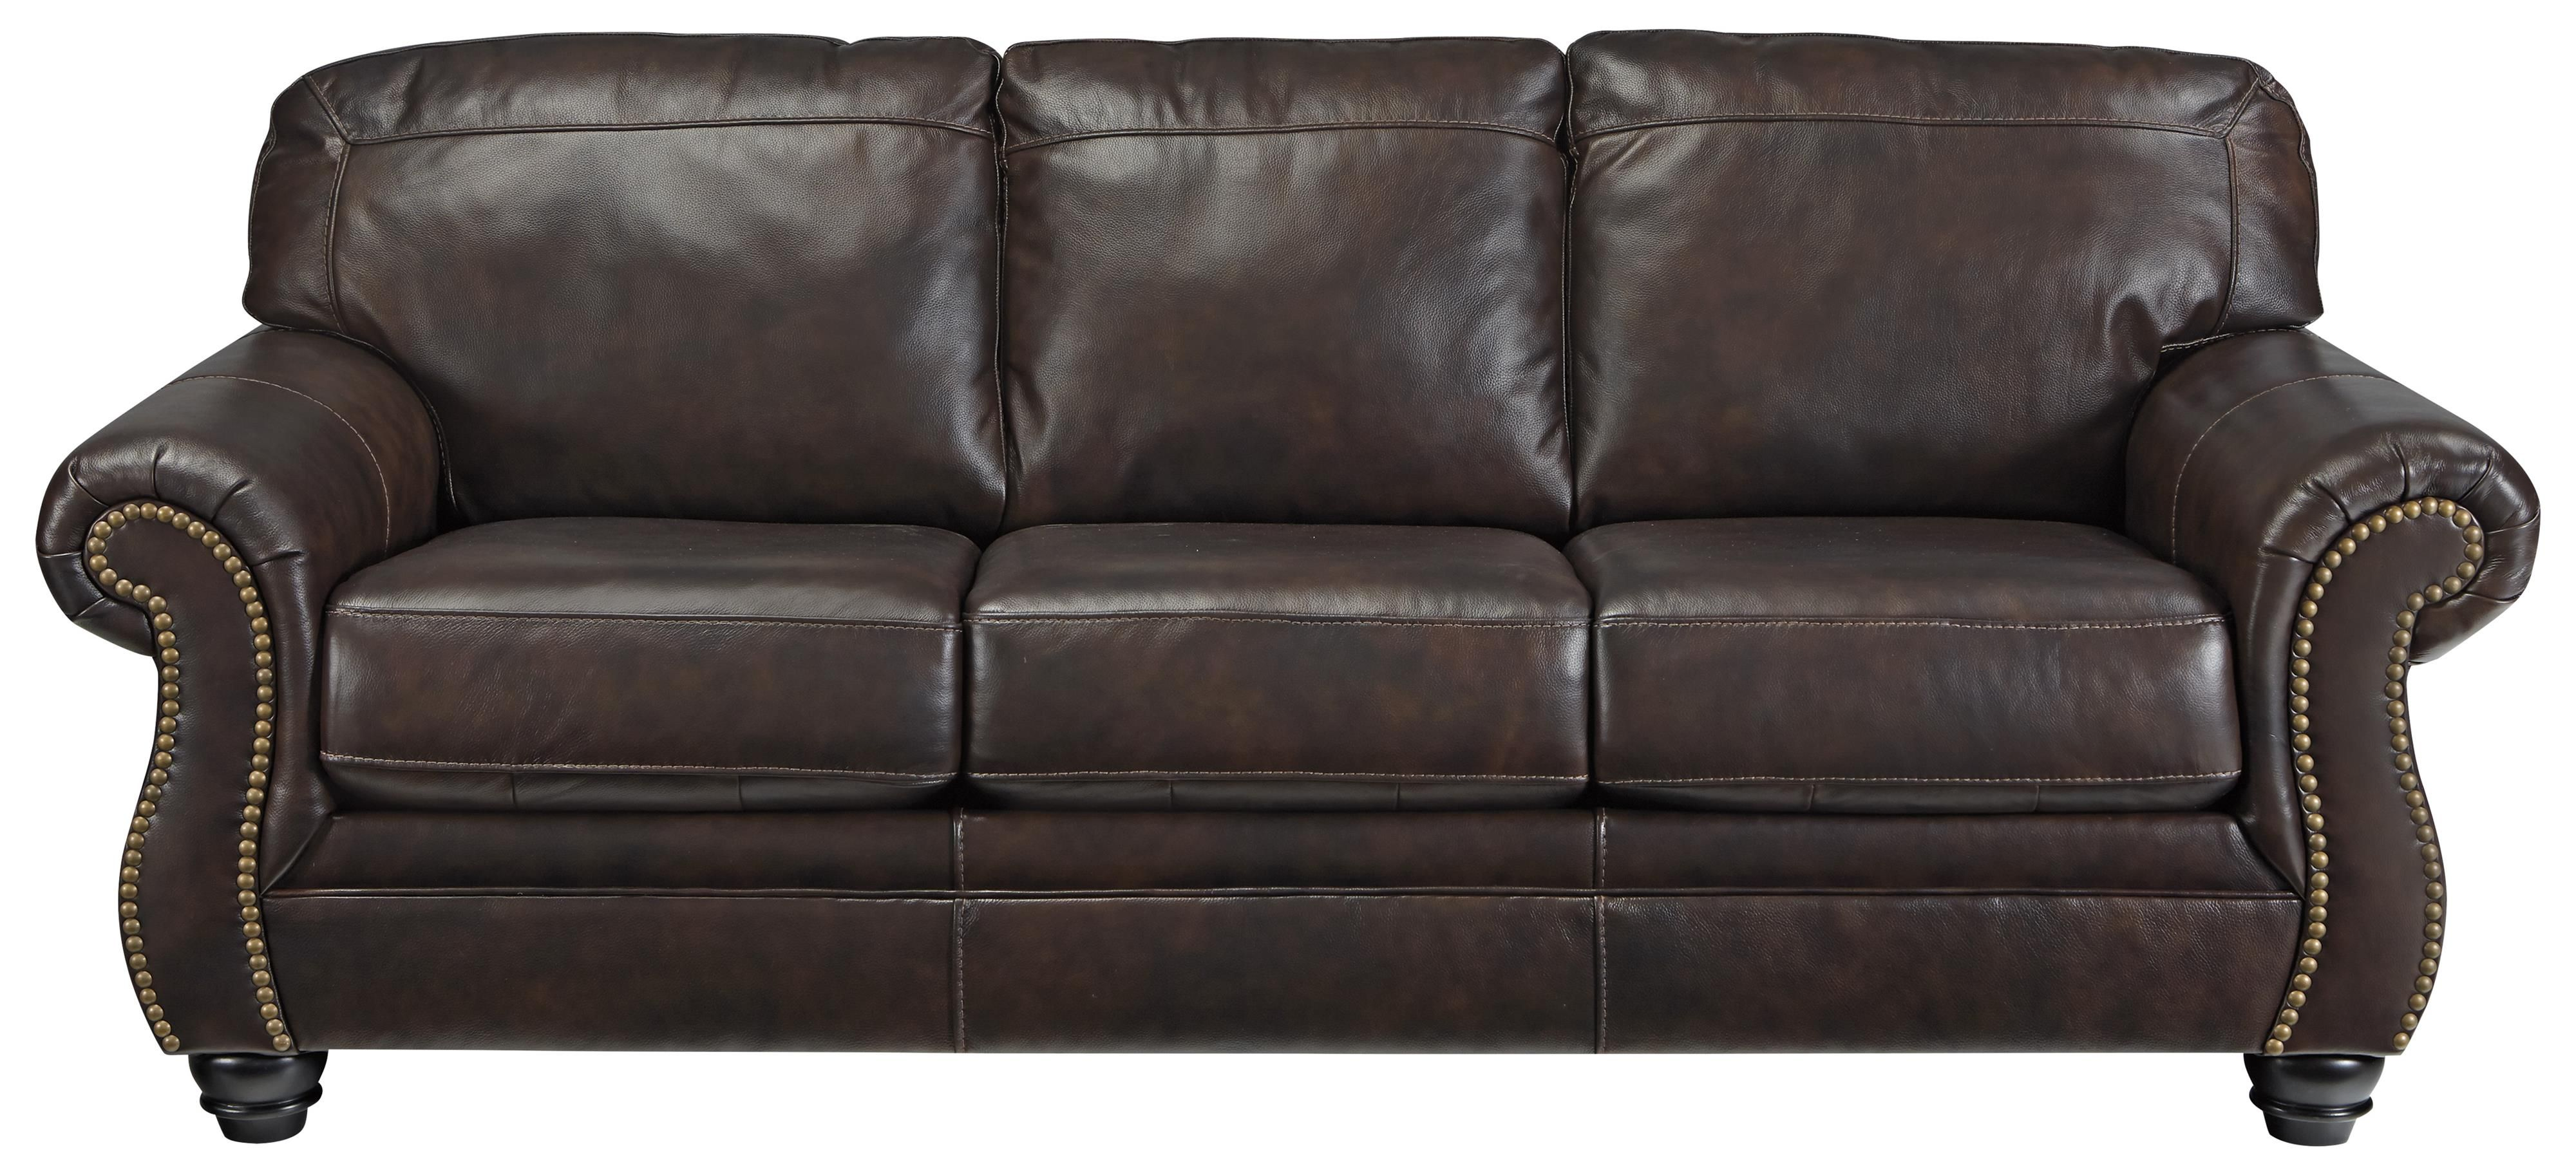 Bristan Traditional Leather Match Sofa with Rolled Arms & Nailhead